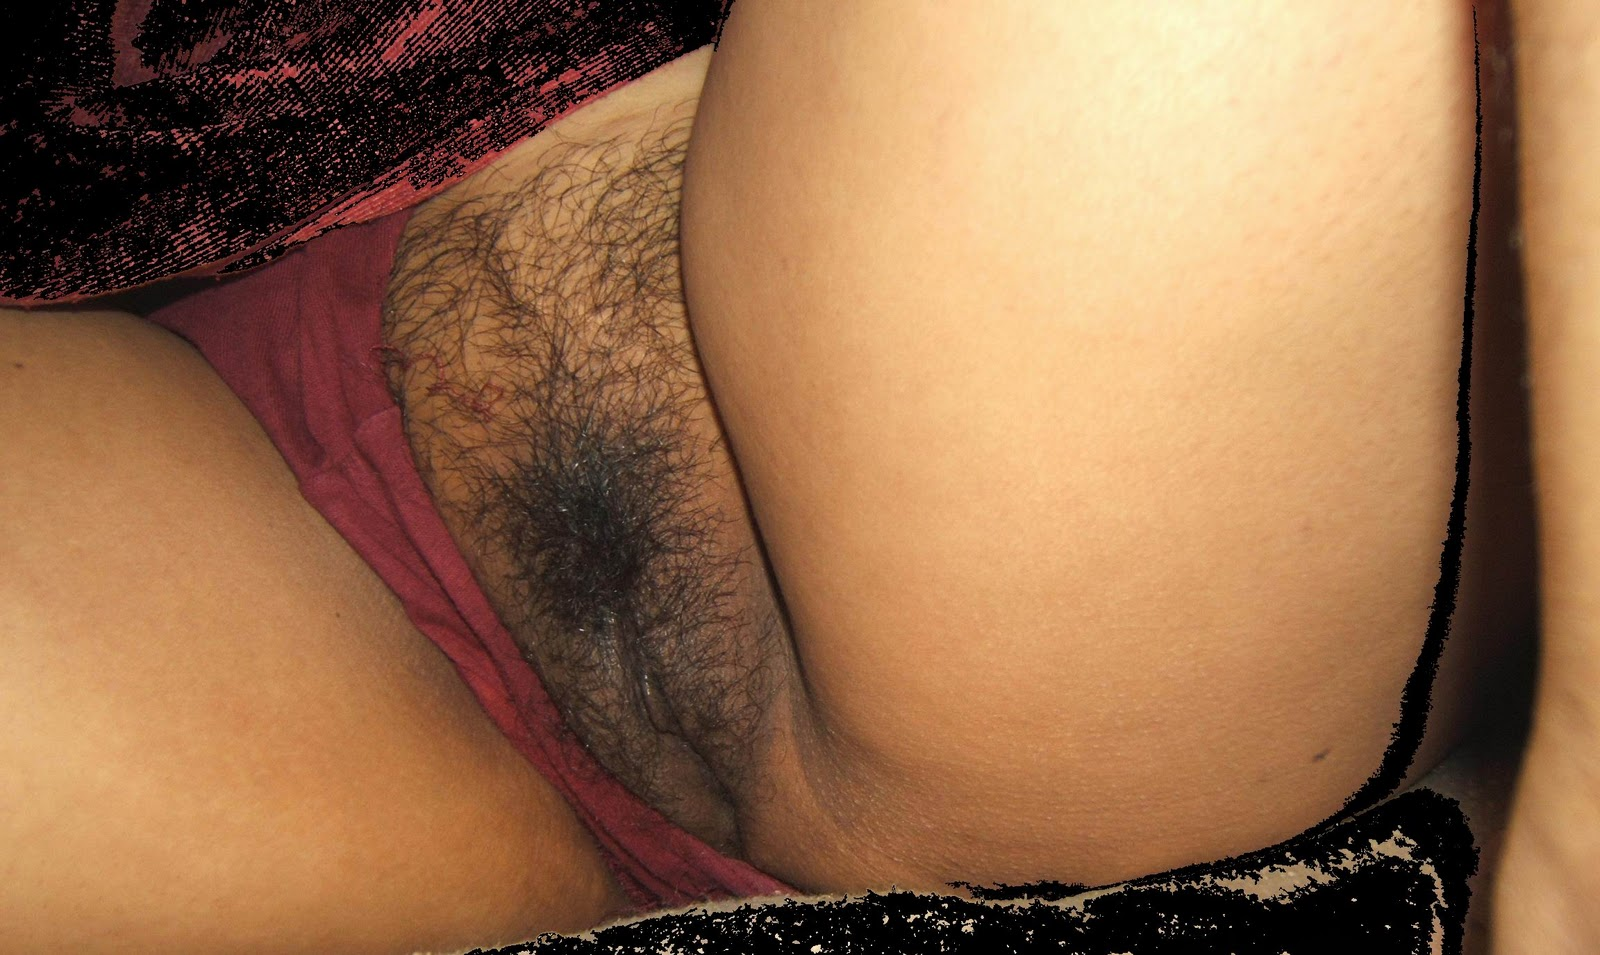 South indian women pussy pics necessary phrase